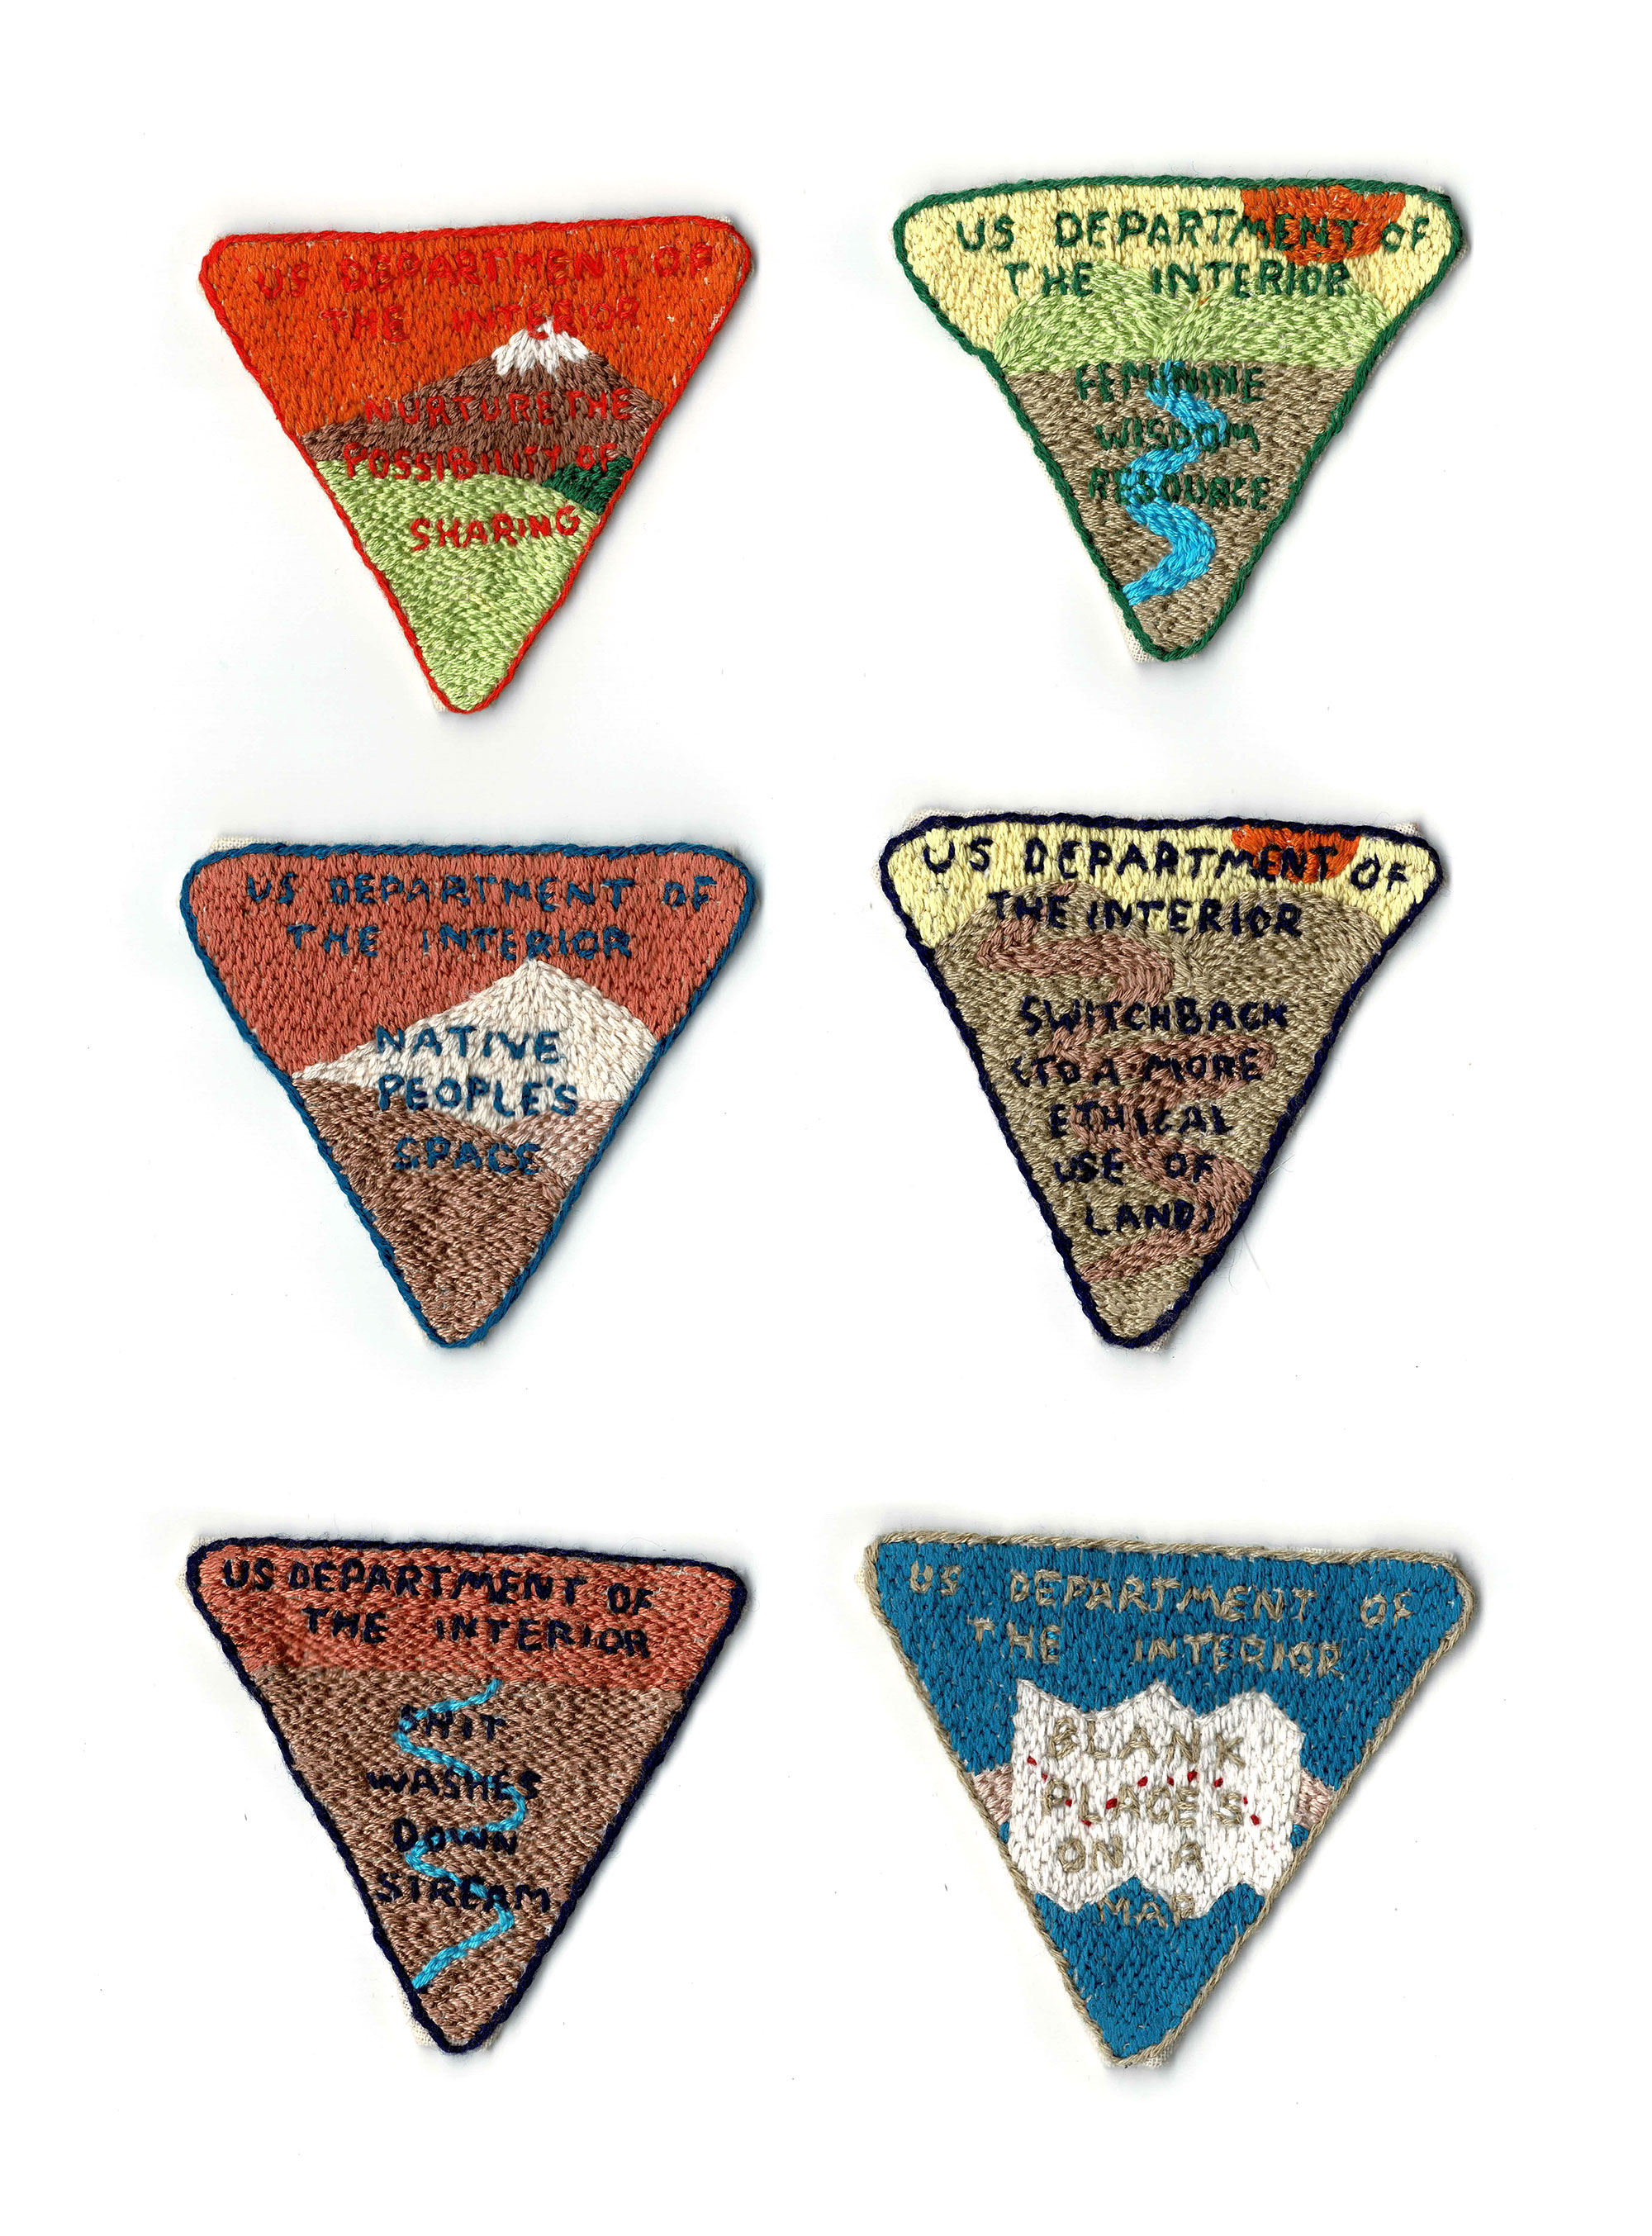 Hargrave_Scanned-Patches.jpg